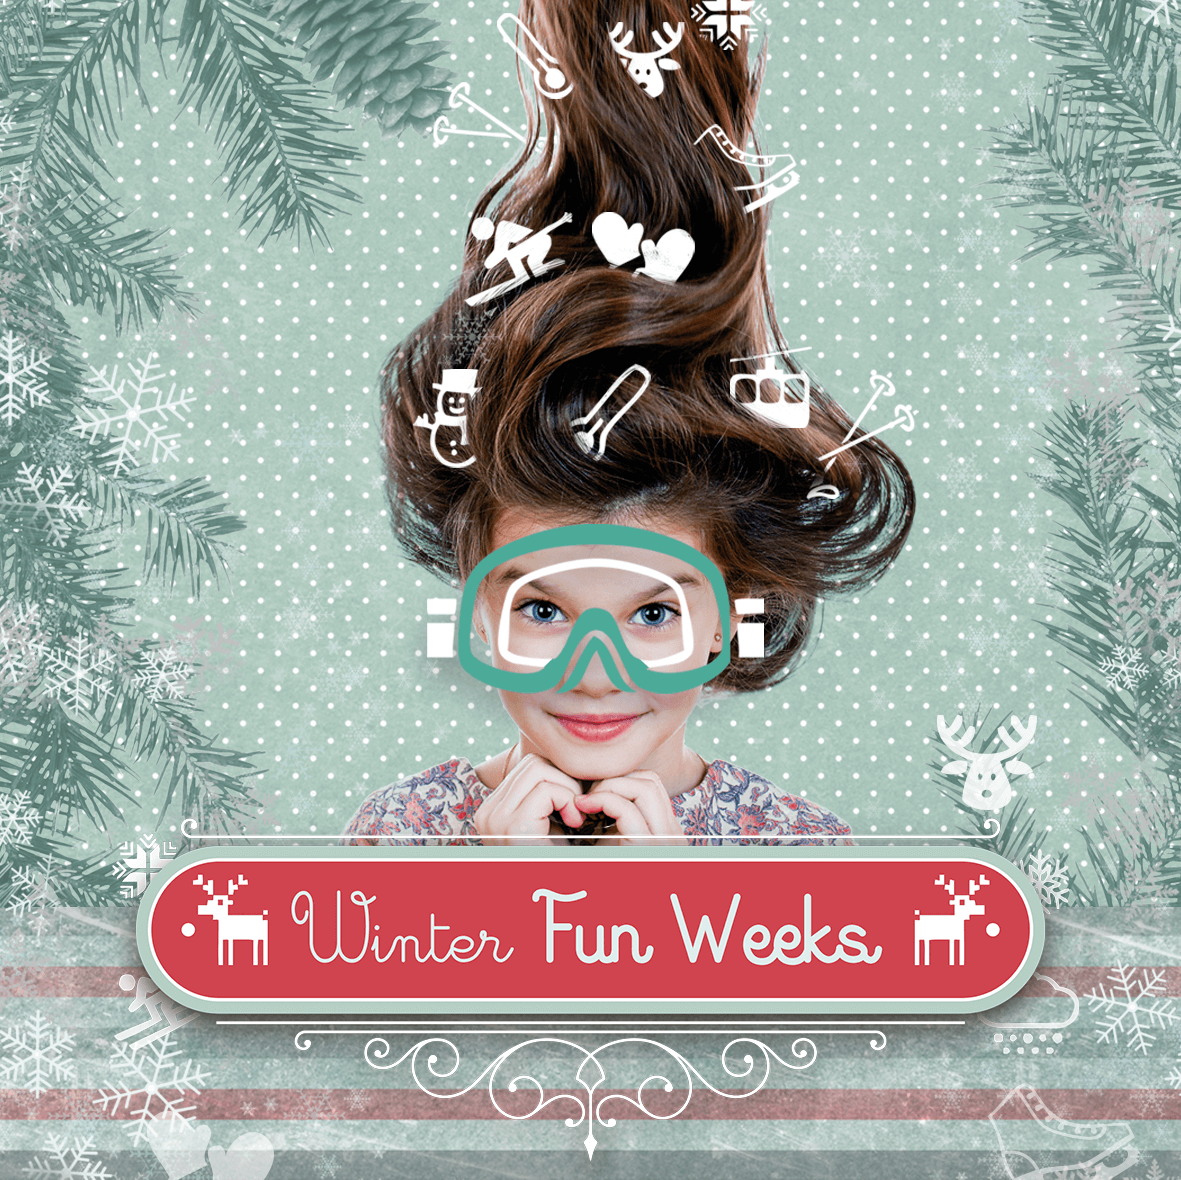 Carnival FunWeeks are Coming!